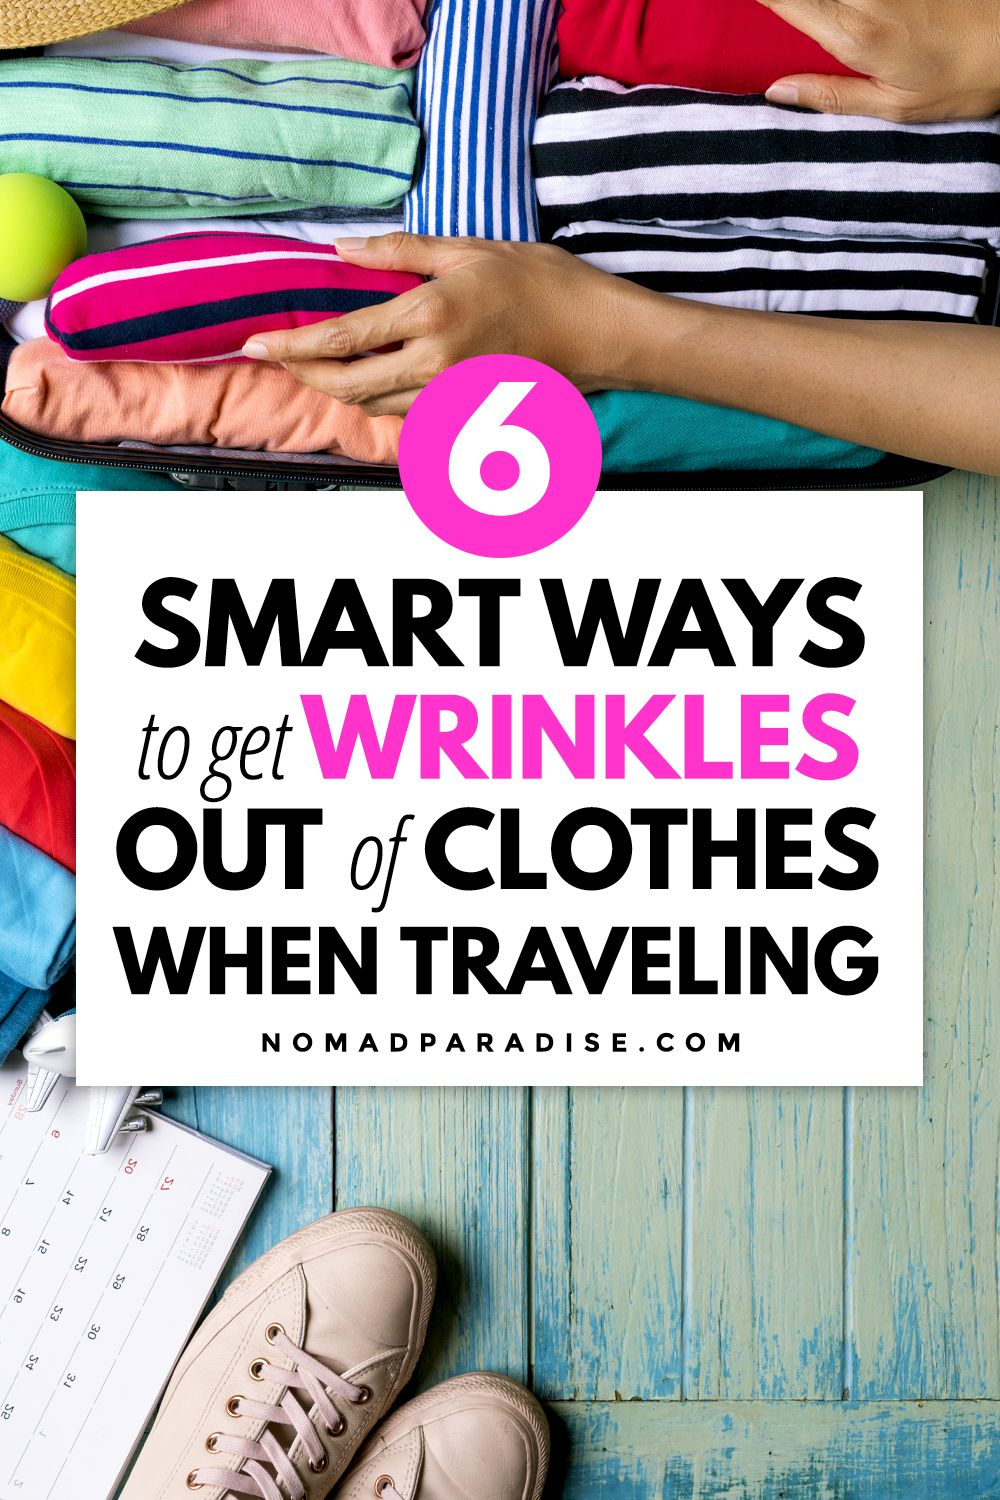 Travel Tips: How to Get Wrinkles out of Clothes. Travel hacks you can use on your next trip. #travelhacks #nomadparadise